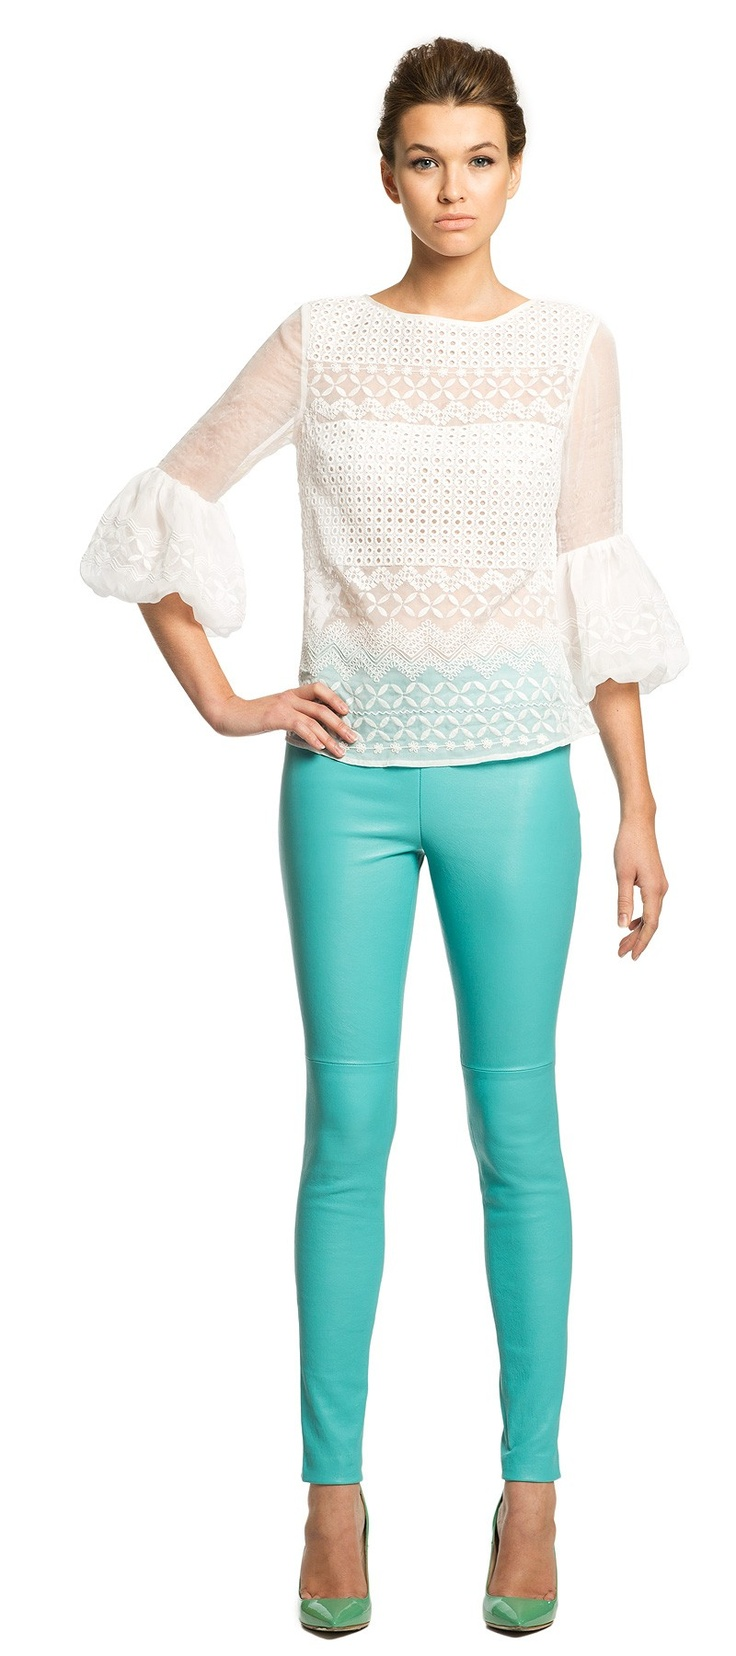 pretty lace blouse // love the turquoise pants + green heels too